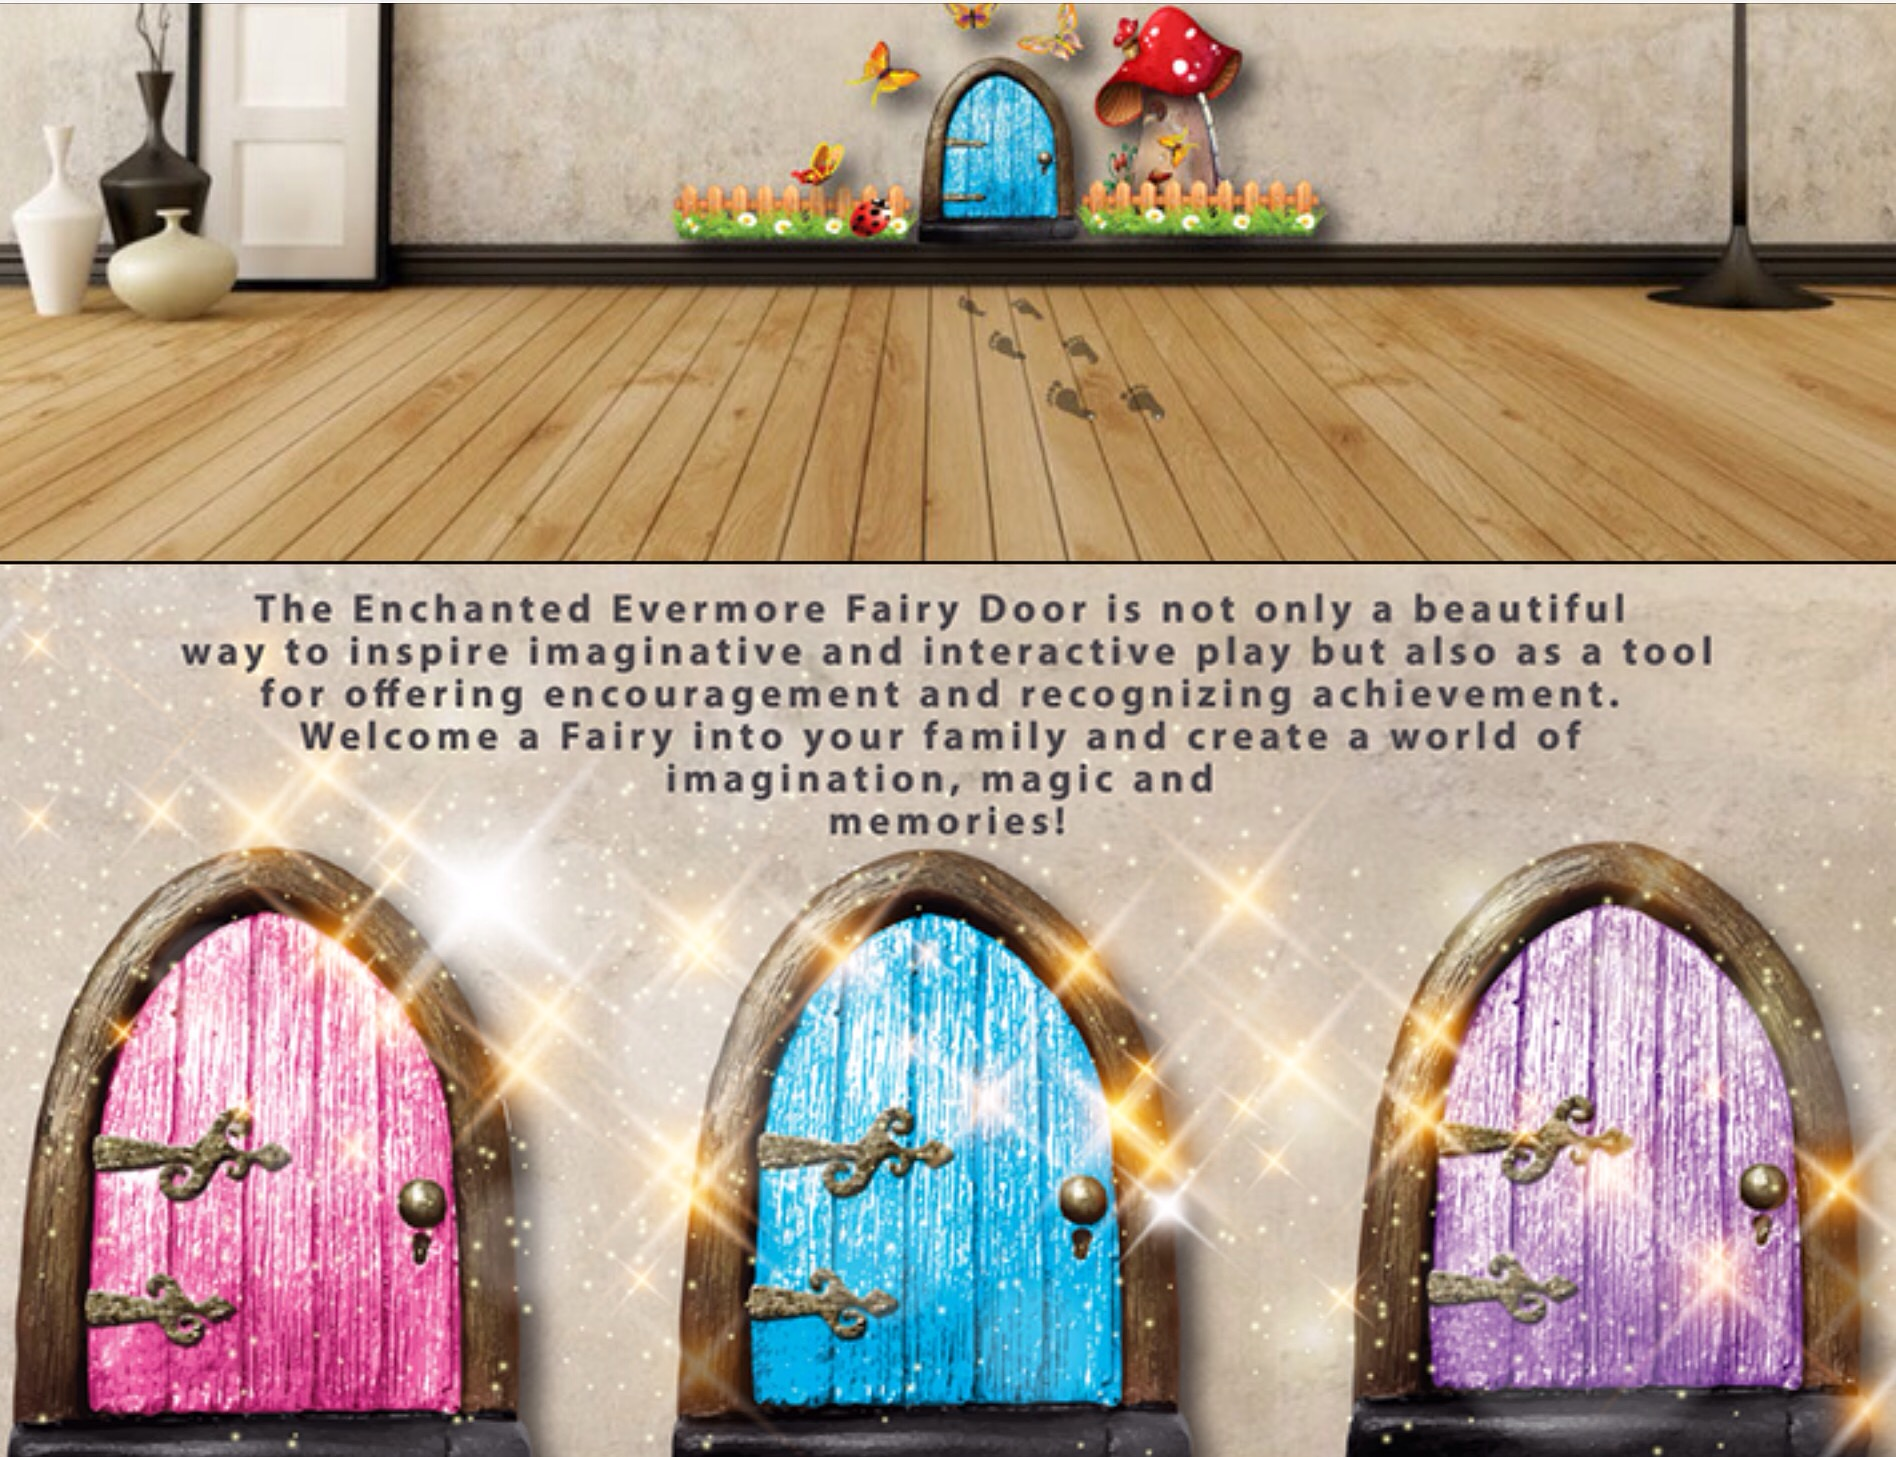 Enchanted door 16032617 sc 1 st goodreads for The works fairy door